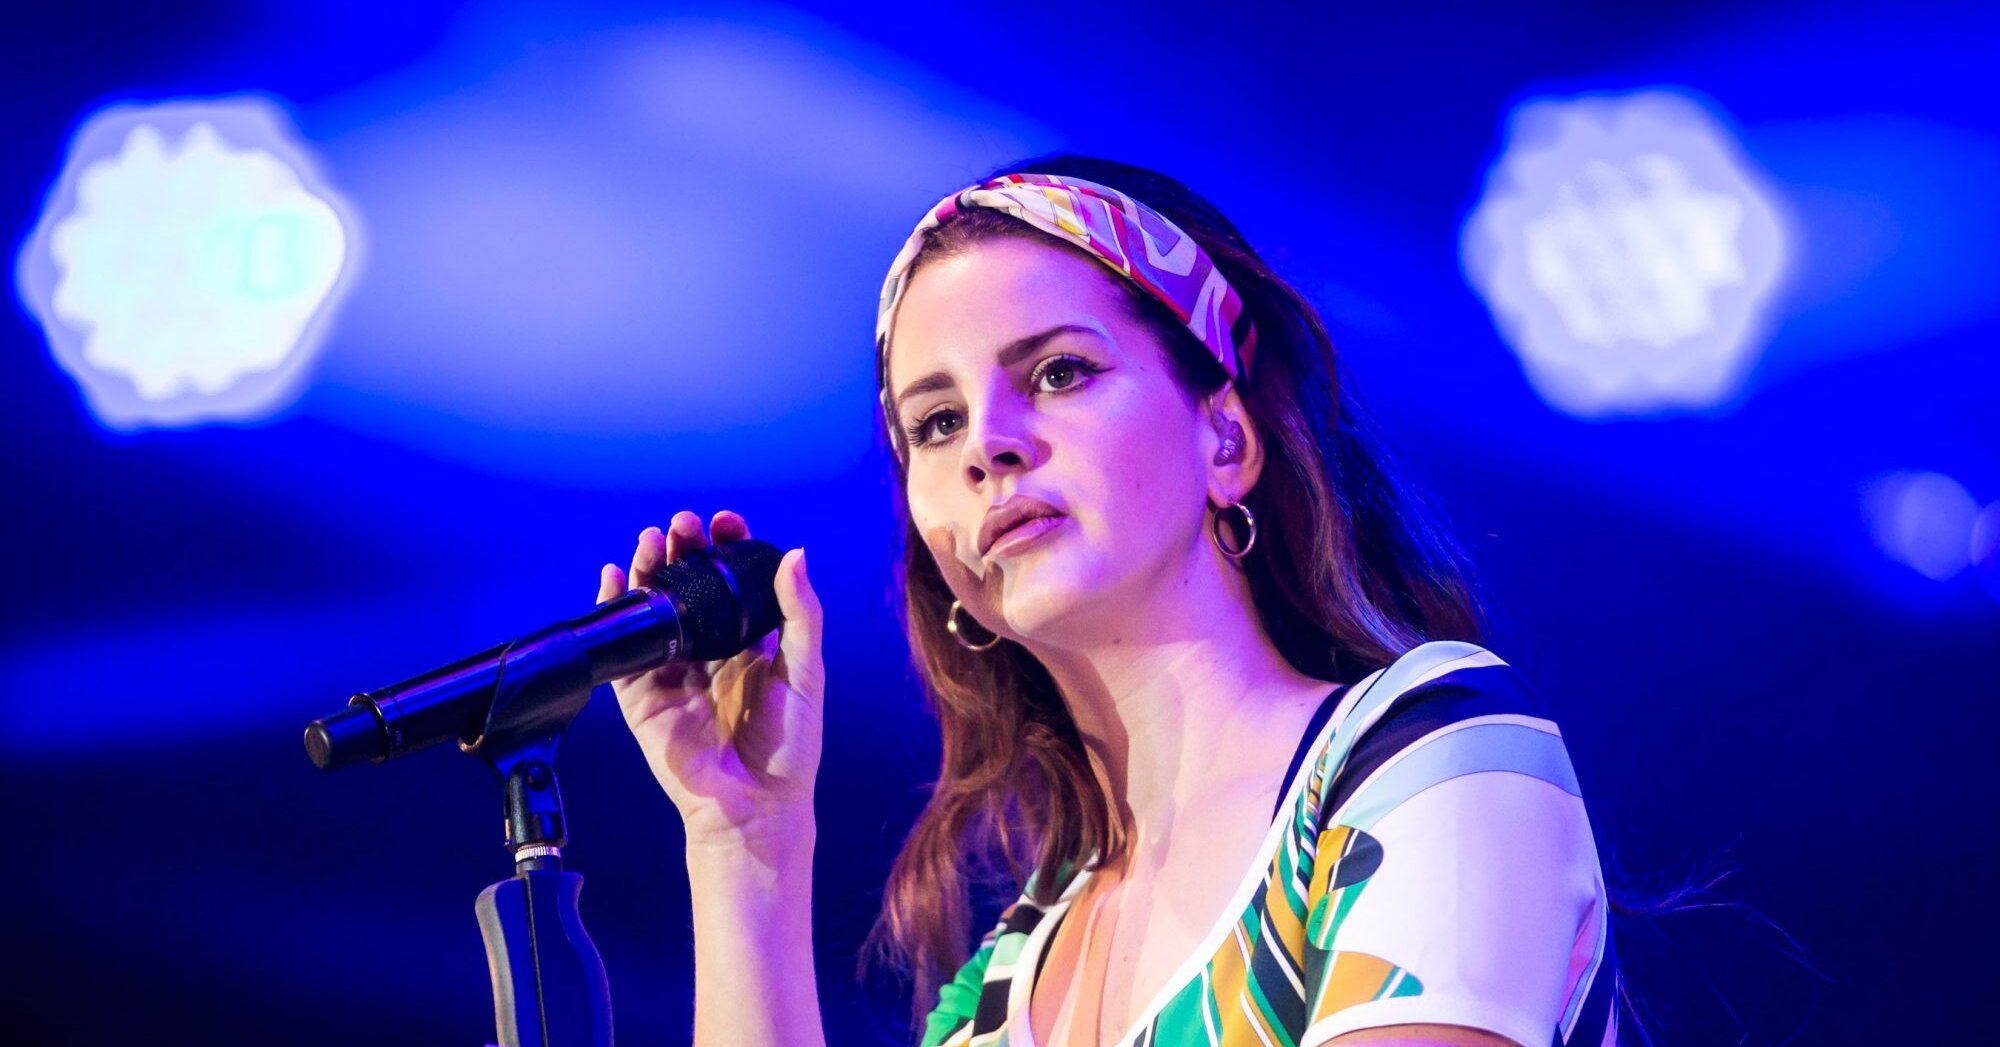 Lana Del Rey clarifies comments about Trump's role in Capitol riots: 'It's not the point'